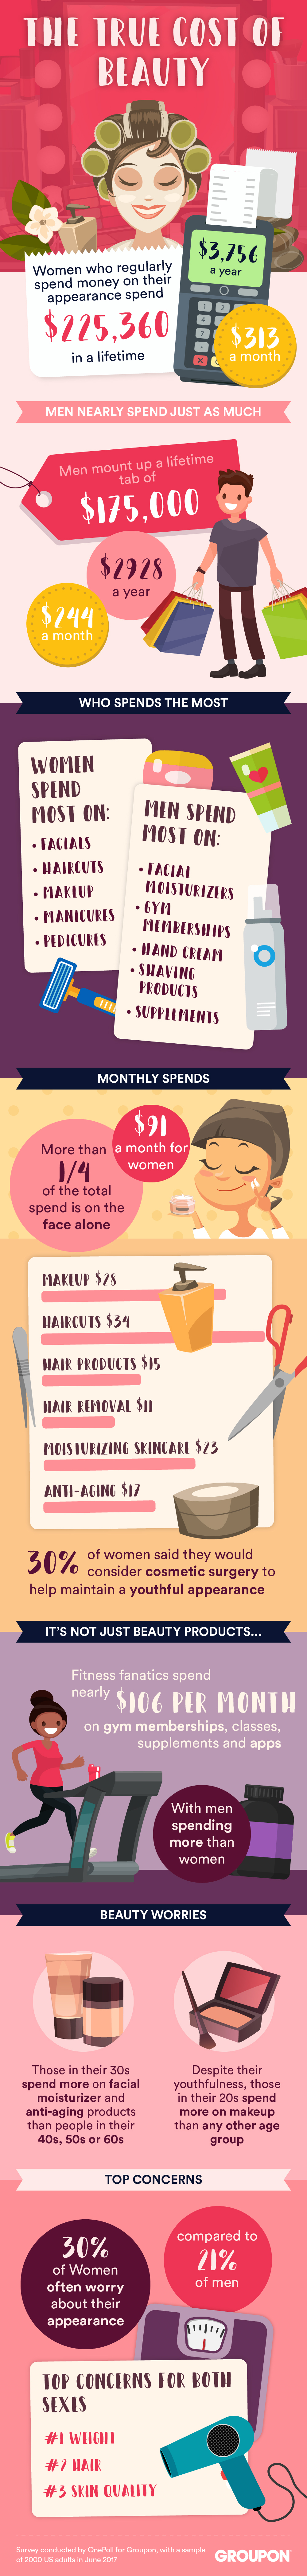 According to Groupon, the women surveyed who said they routinely spend money on their appearance spend an average of $3,756 a year (or $313 a month), which adds up to $225,360 throughout their entire lifetime. (Graphic: Business Wire)